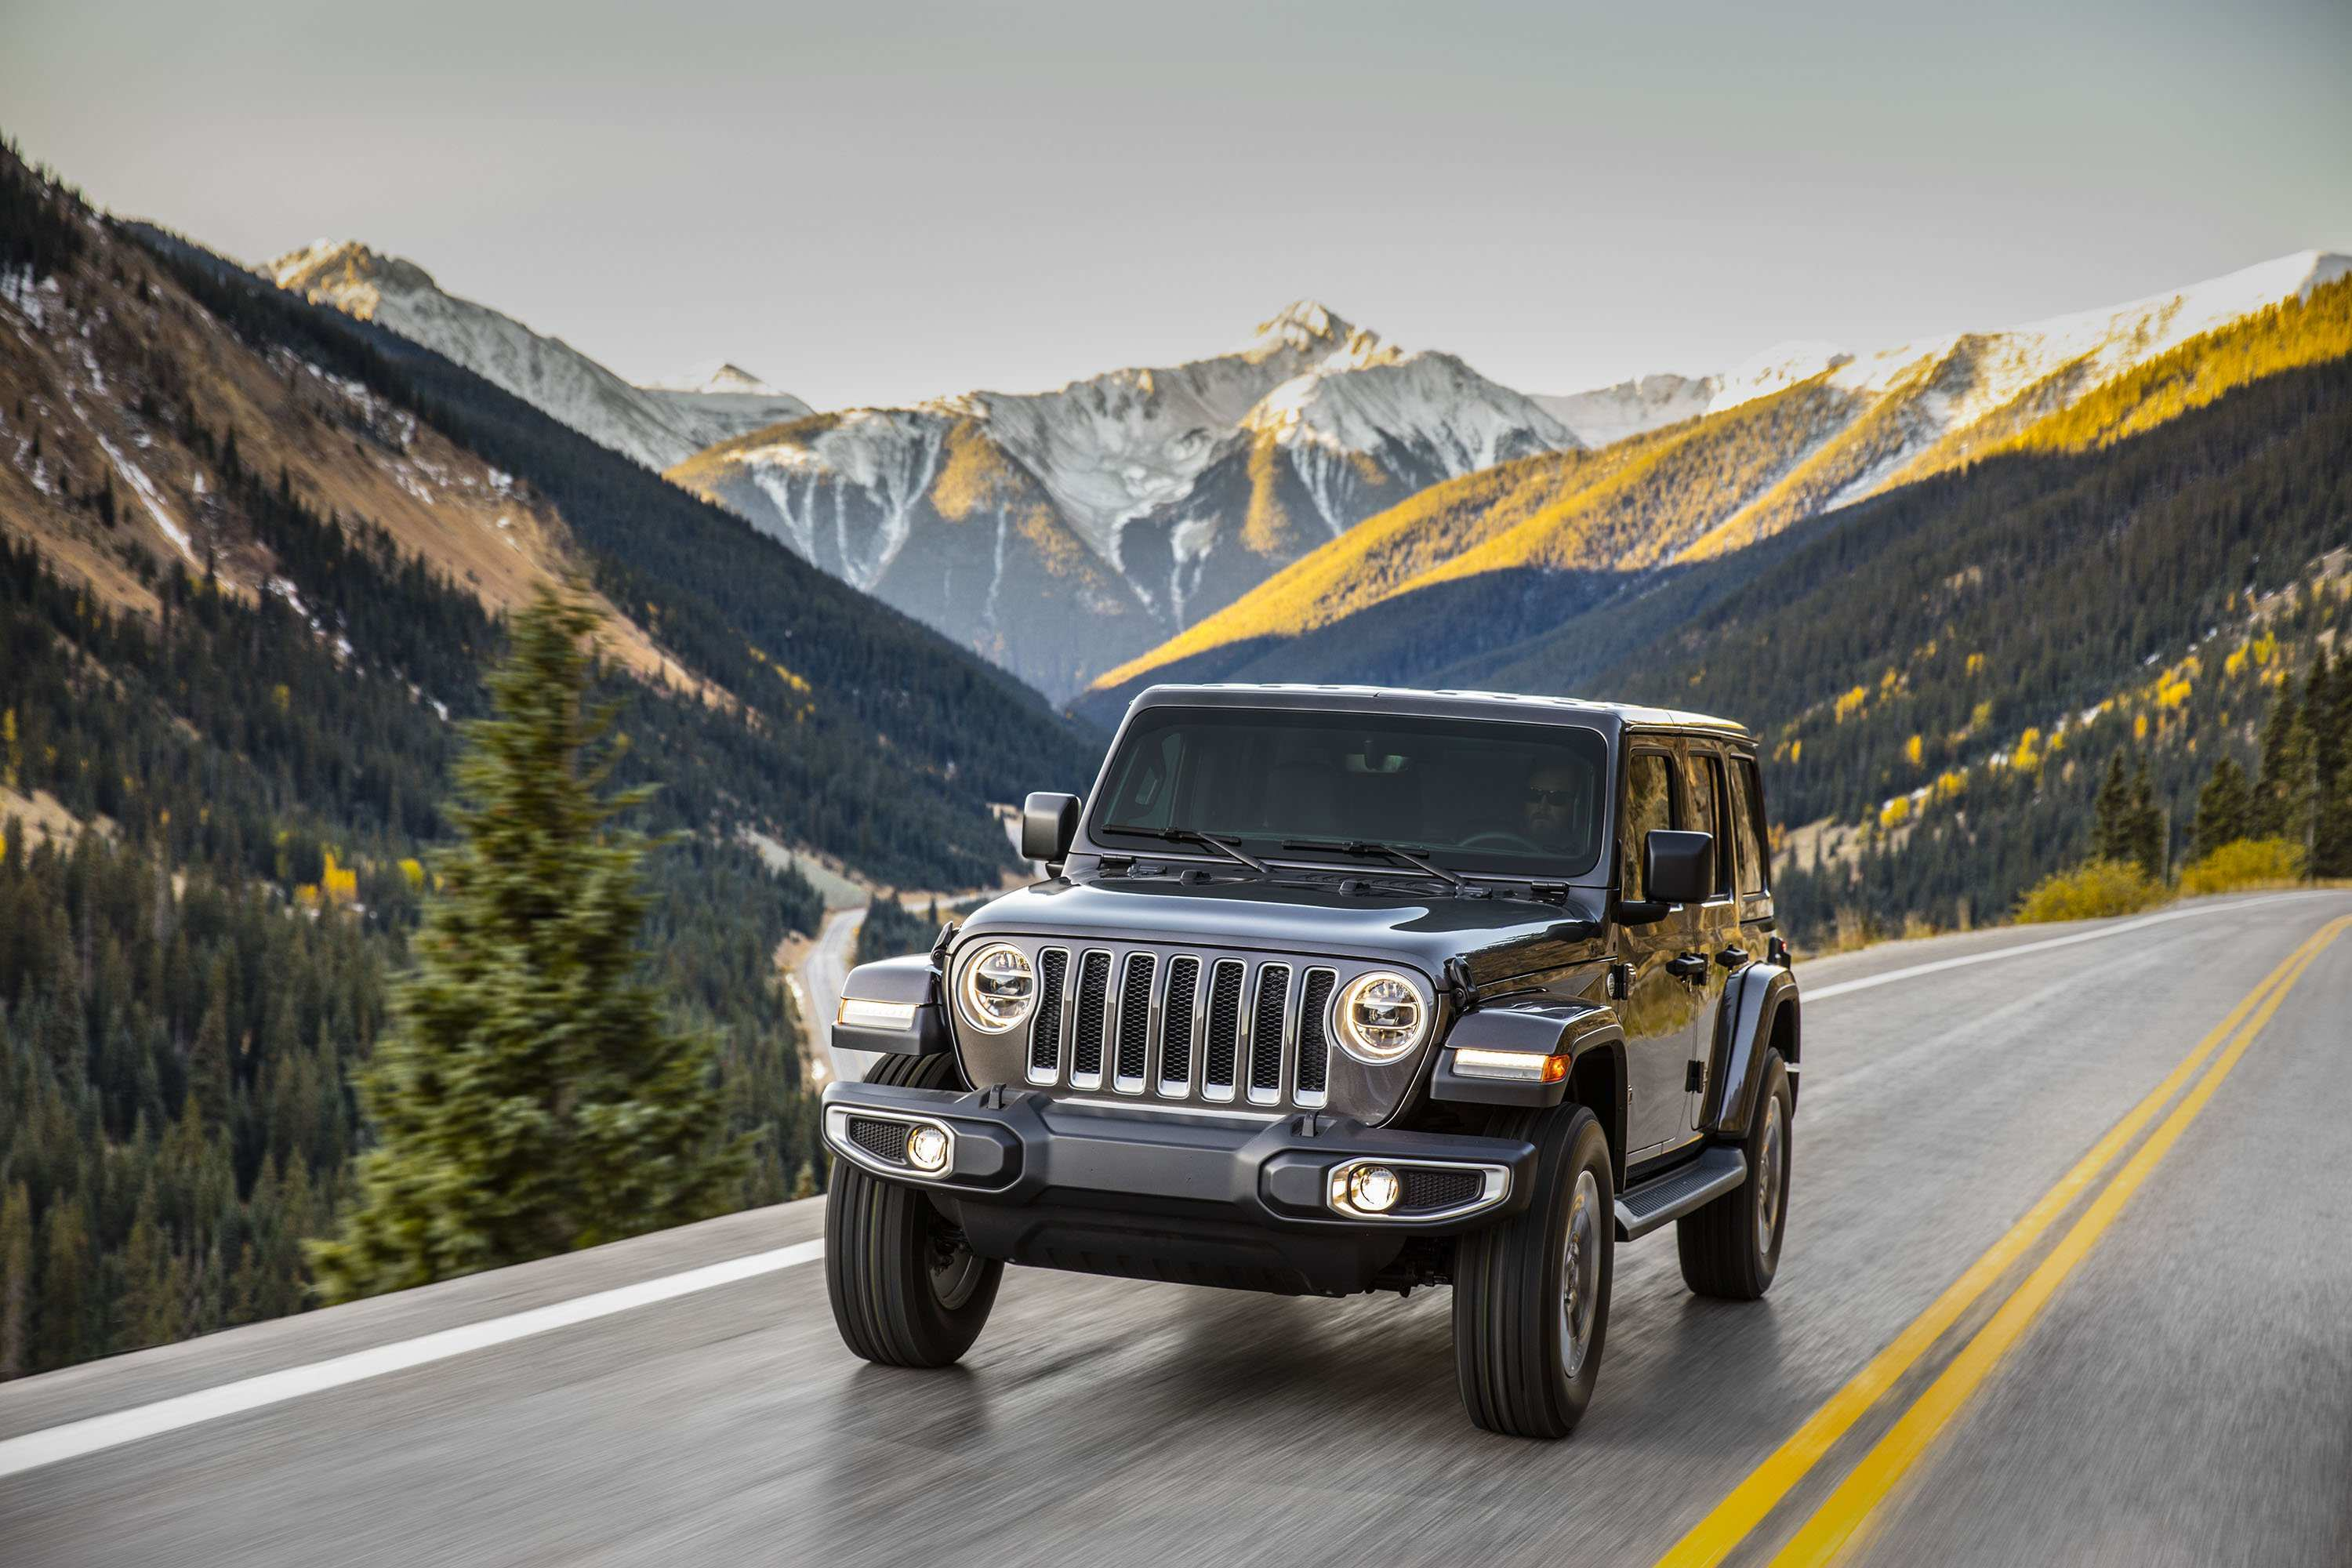 61 New 2019 Jeep 2 0 Turbo Mpg Reviews with 2019 Jeep 2 0 Turbo Mpg